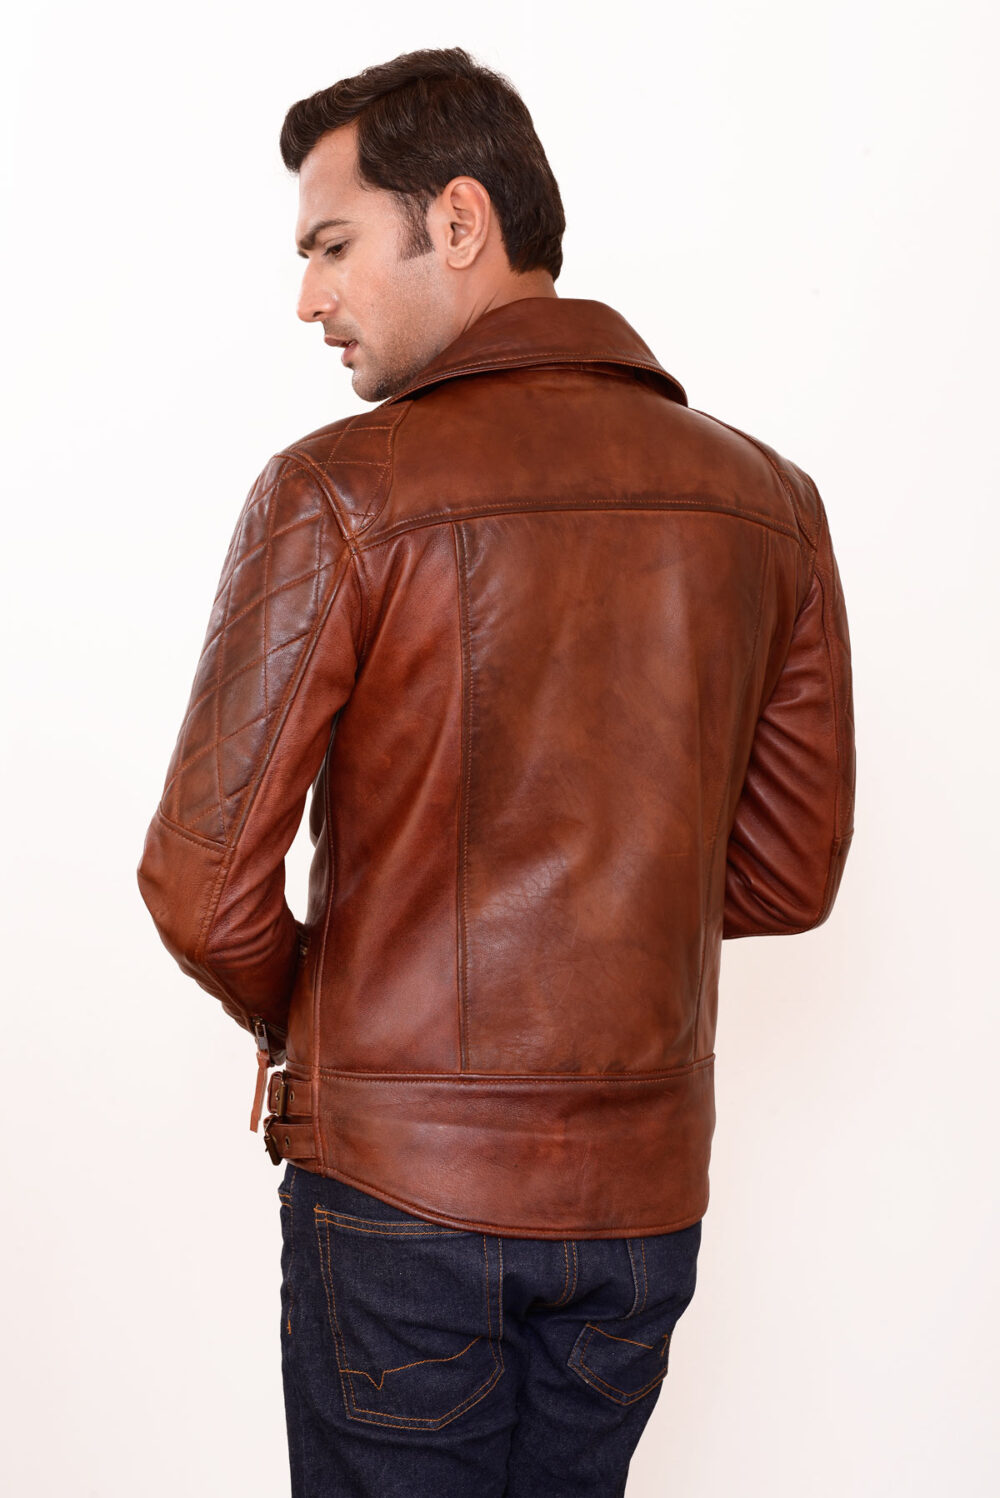 how to clean genuine leather jacket